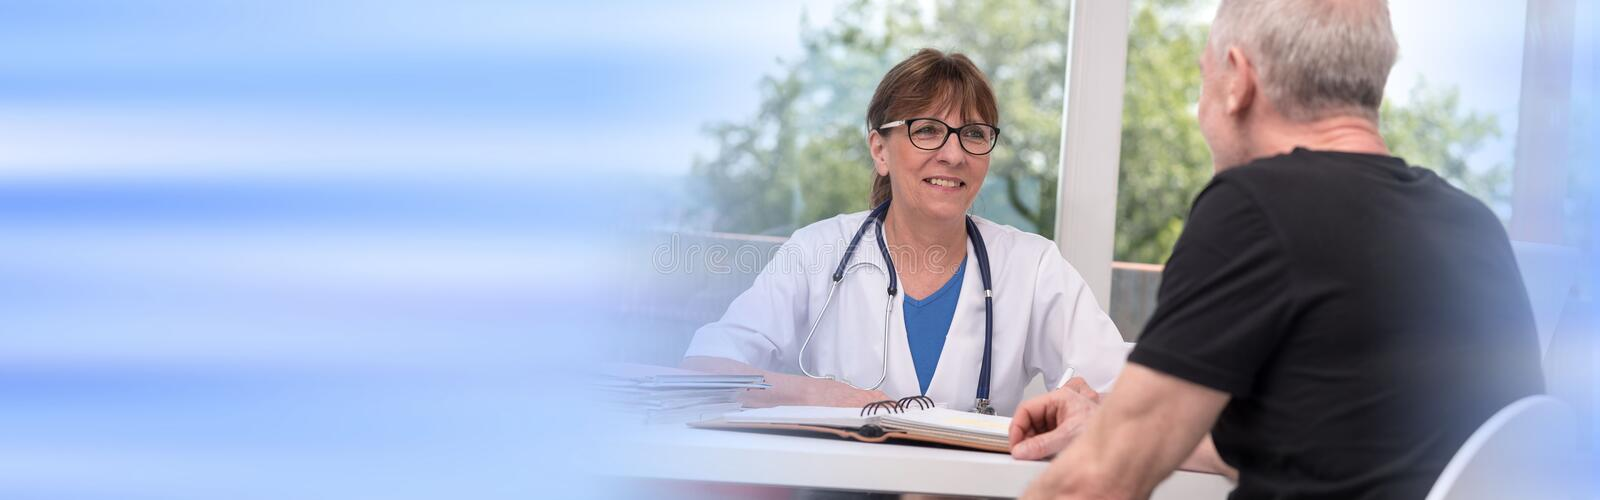 Female doctor talking with her patient royalty free stock photos